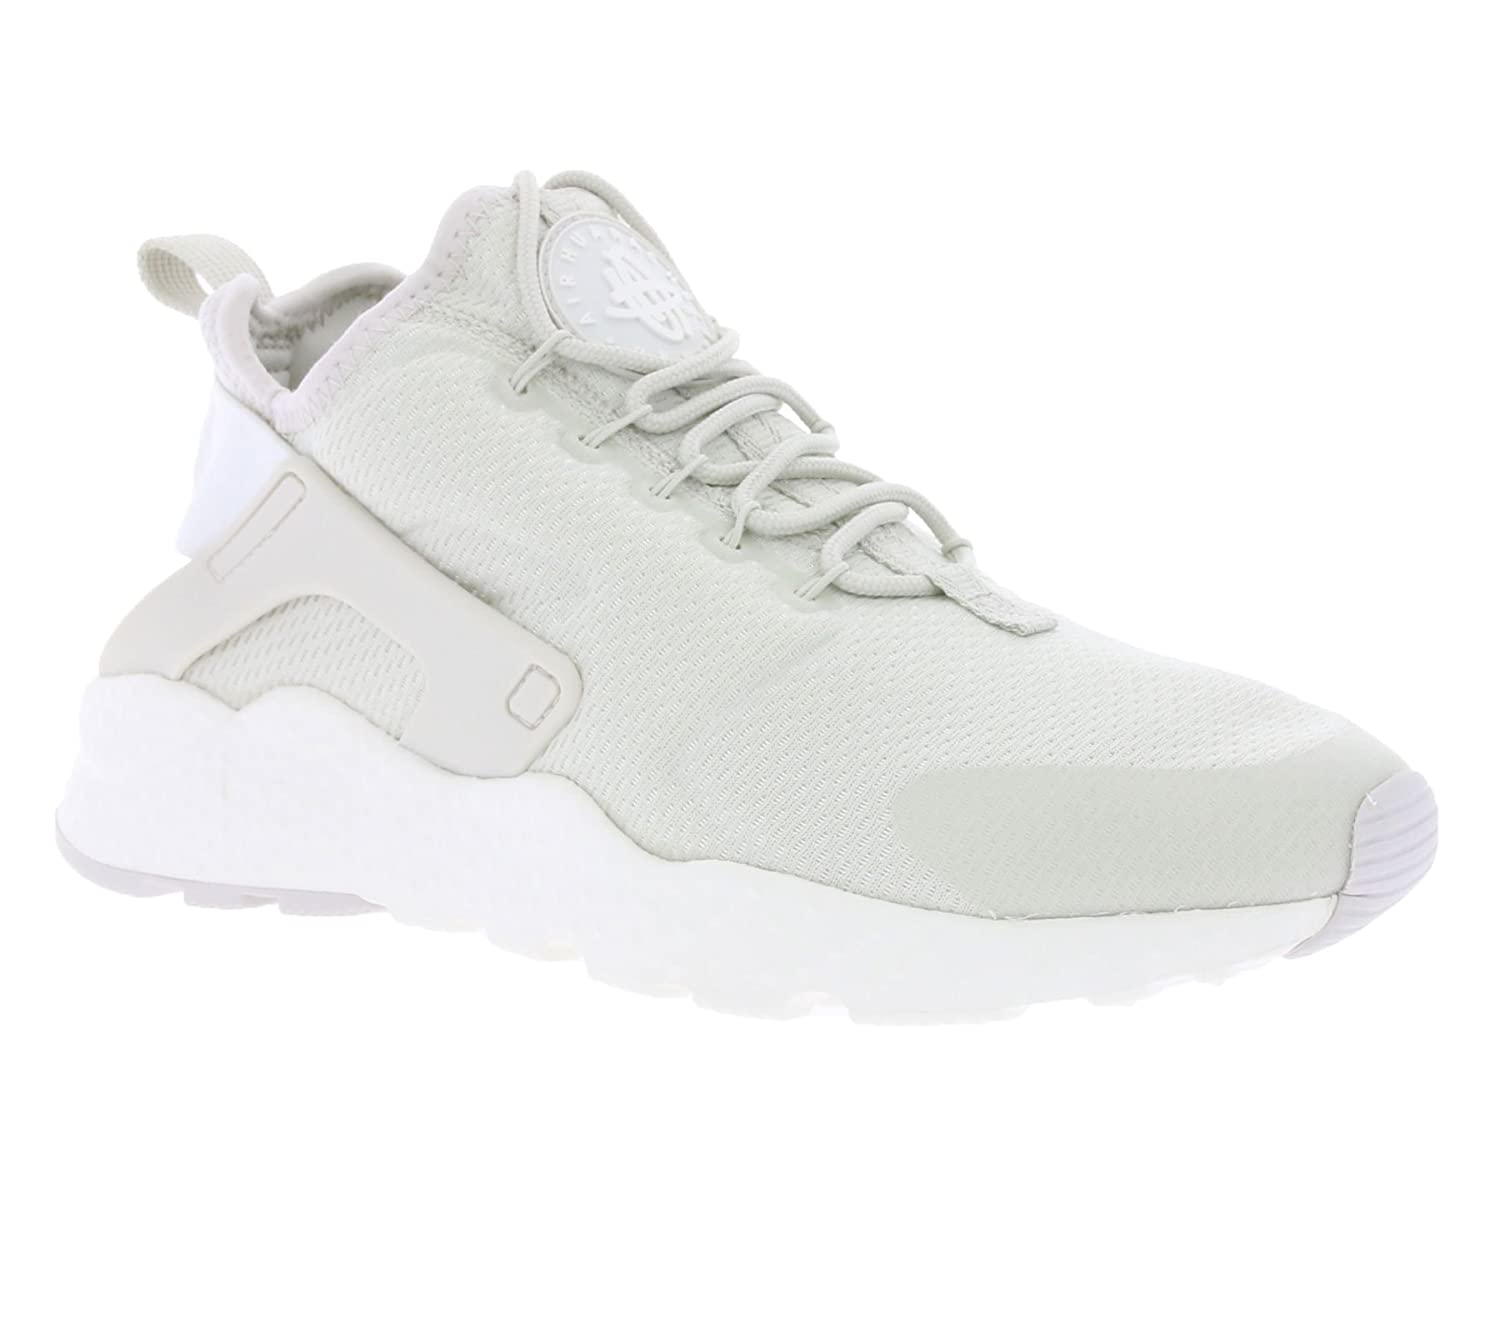 NIKE Women's Air Huarache Run Ultra Running Shoe B000T6QV2Q 5.5 B(M) US|Light Bone/Sail